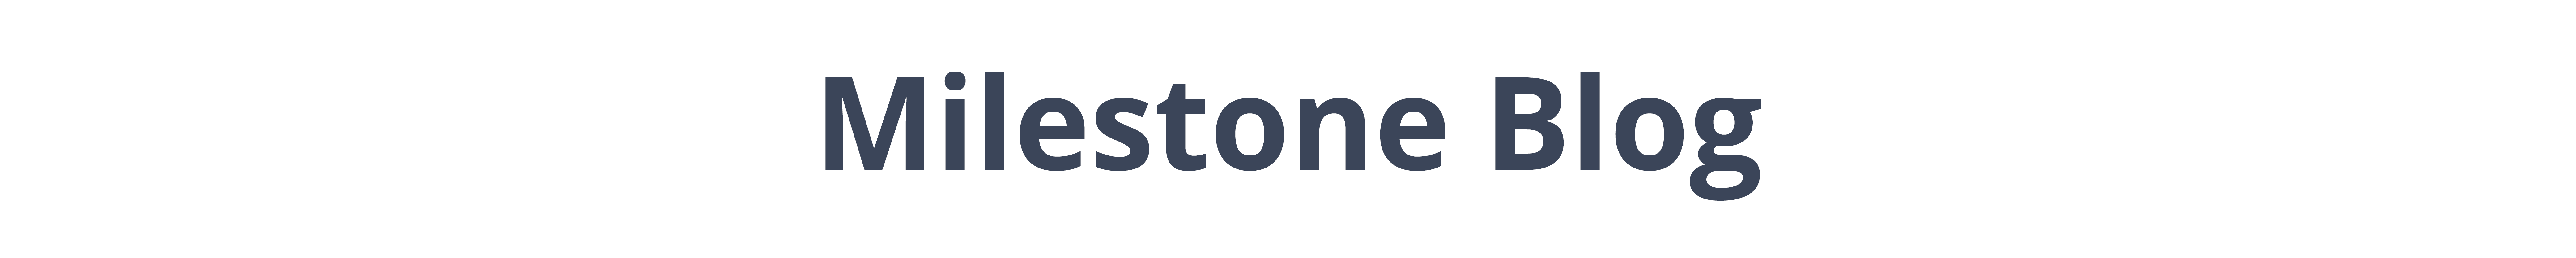 Milestone magazine logo at Heatherwood Senior Living in Boise, Idaho